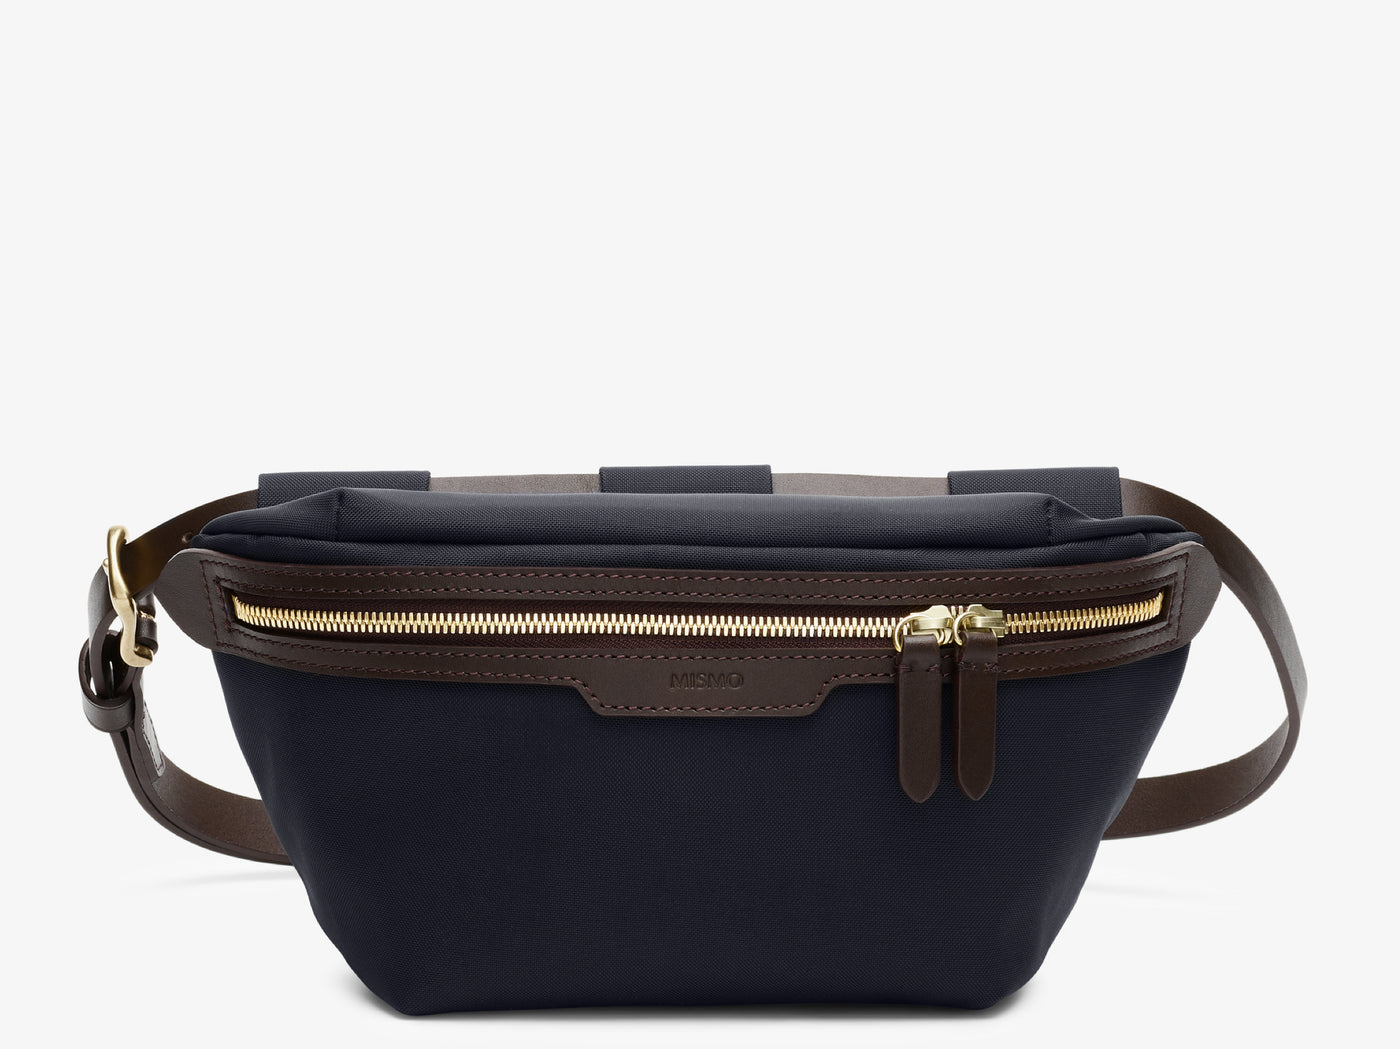 M/S Belt Bag - Navy/Dark brown